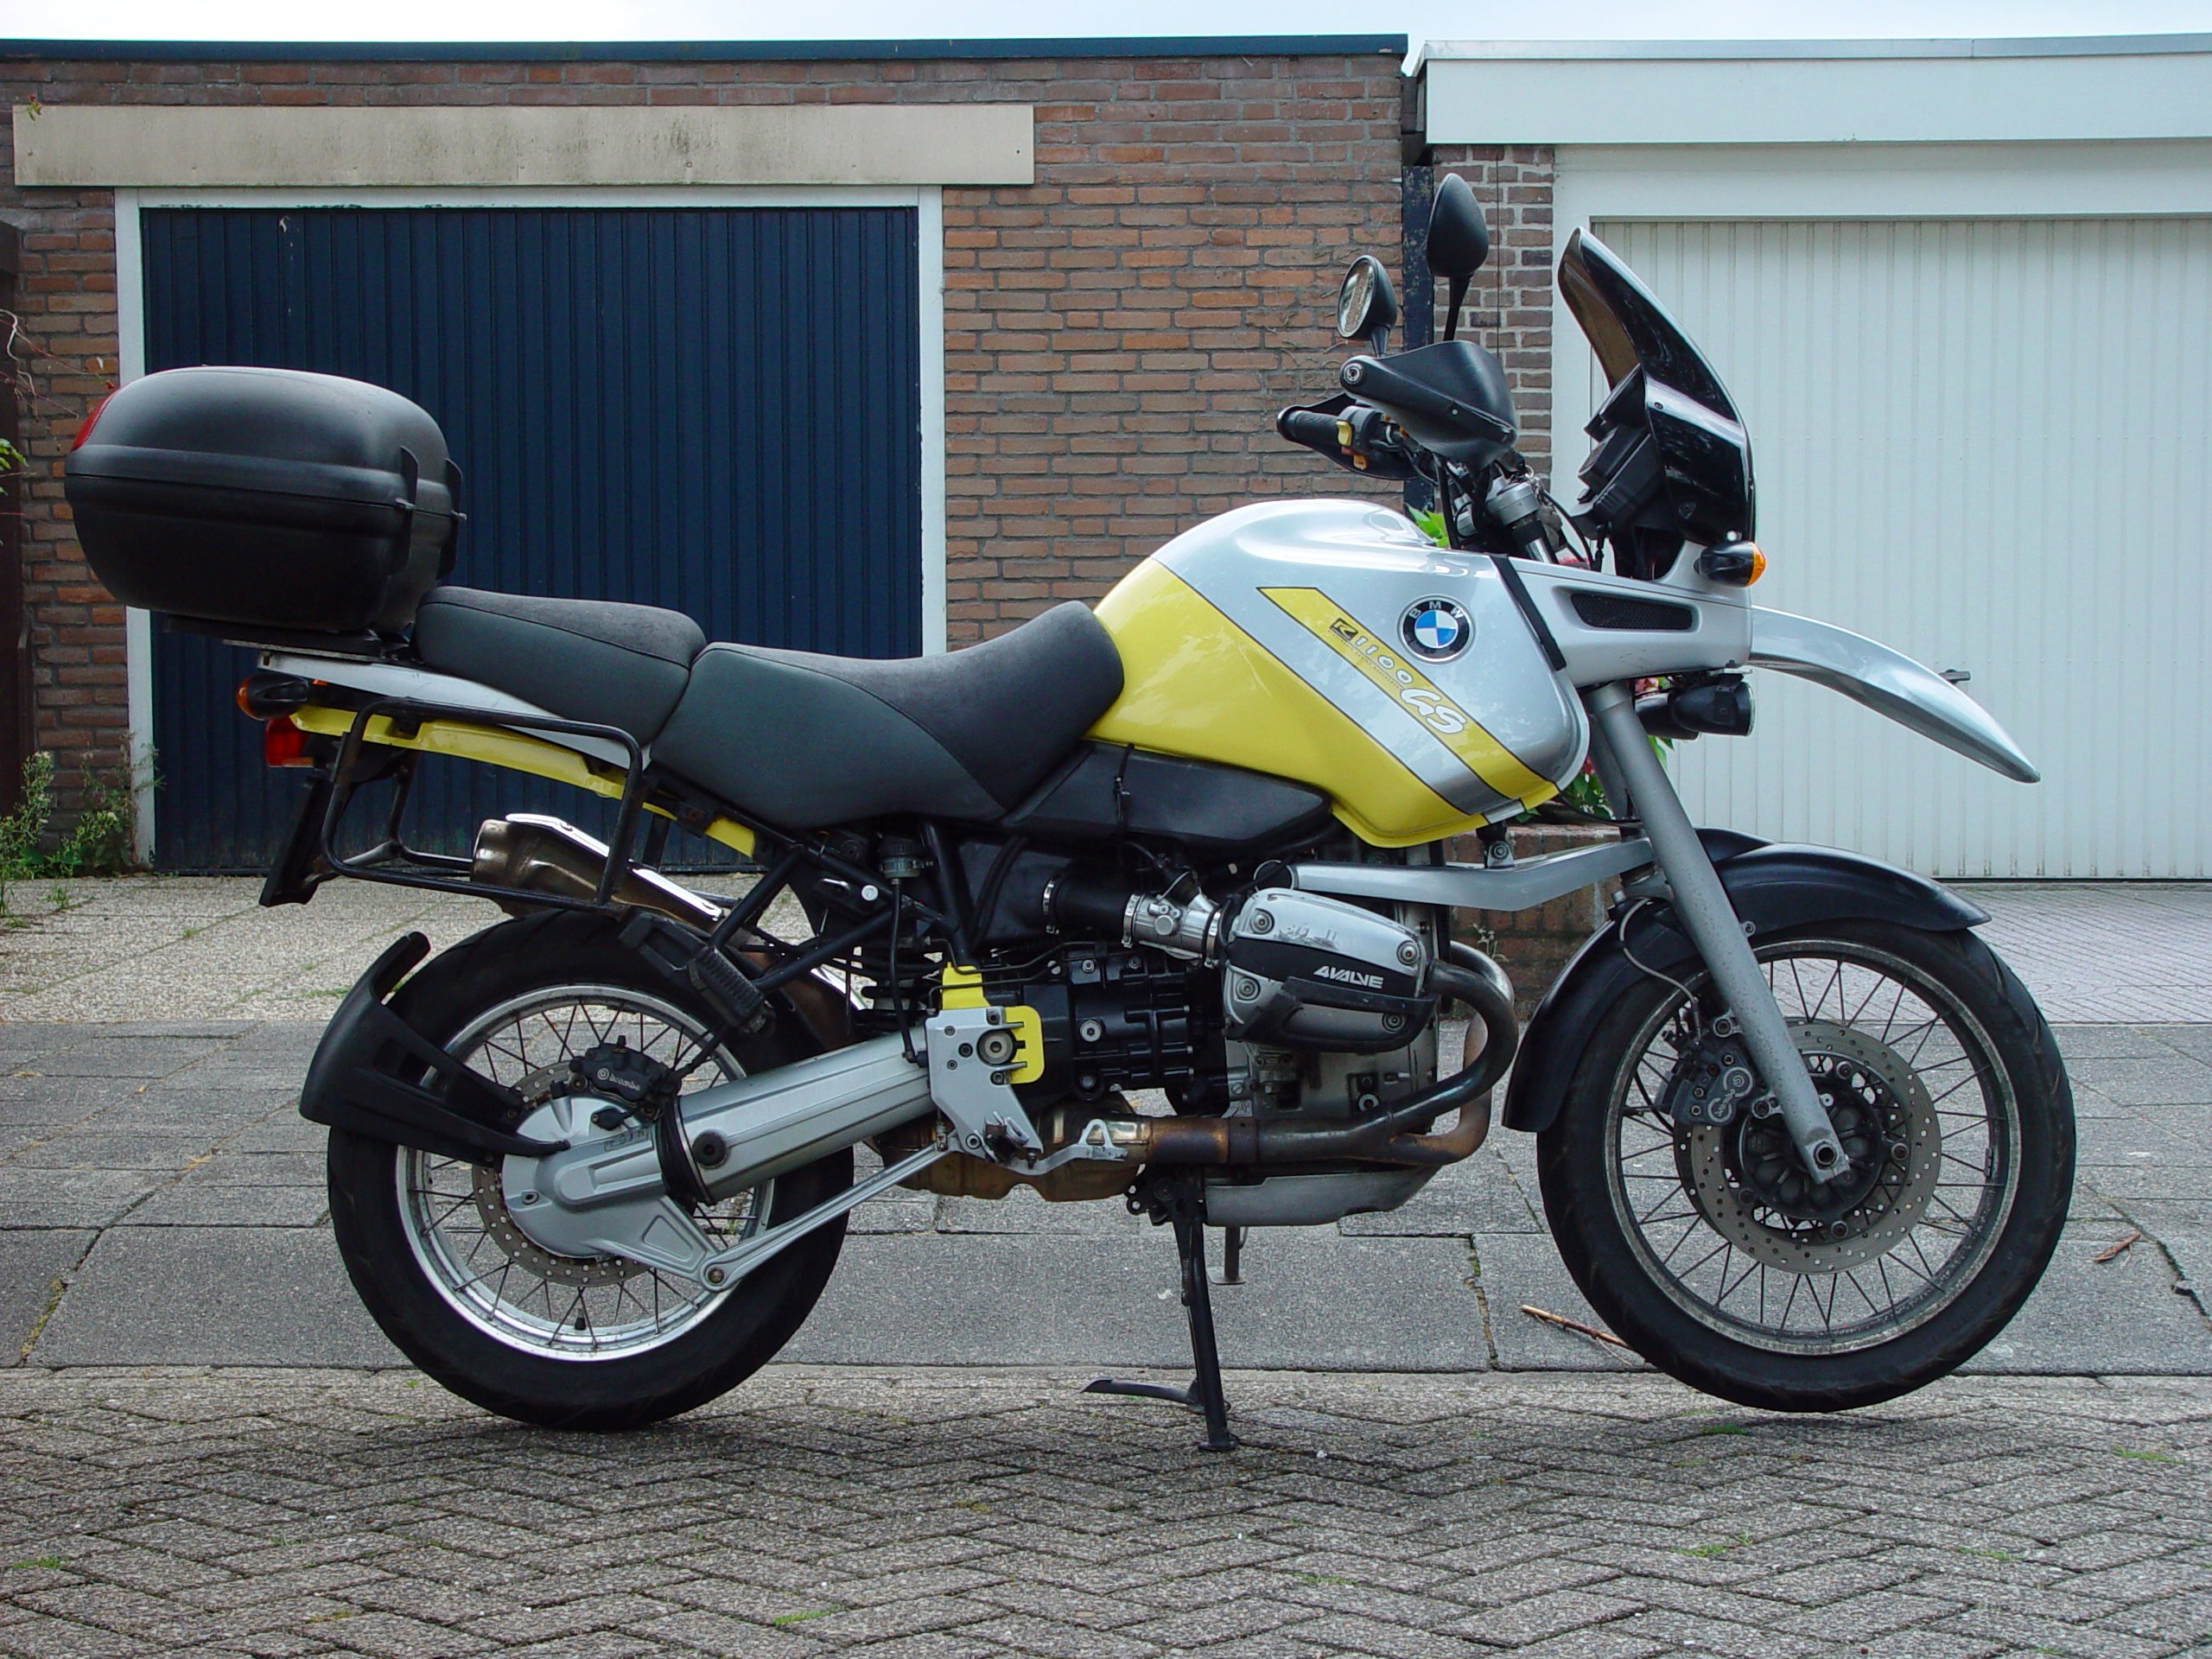 Te Koop Bmw R1100gs 99 Allroadmaniacs